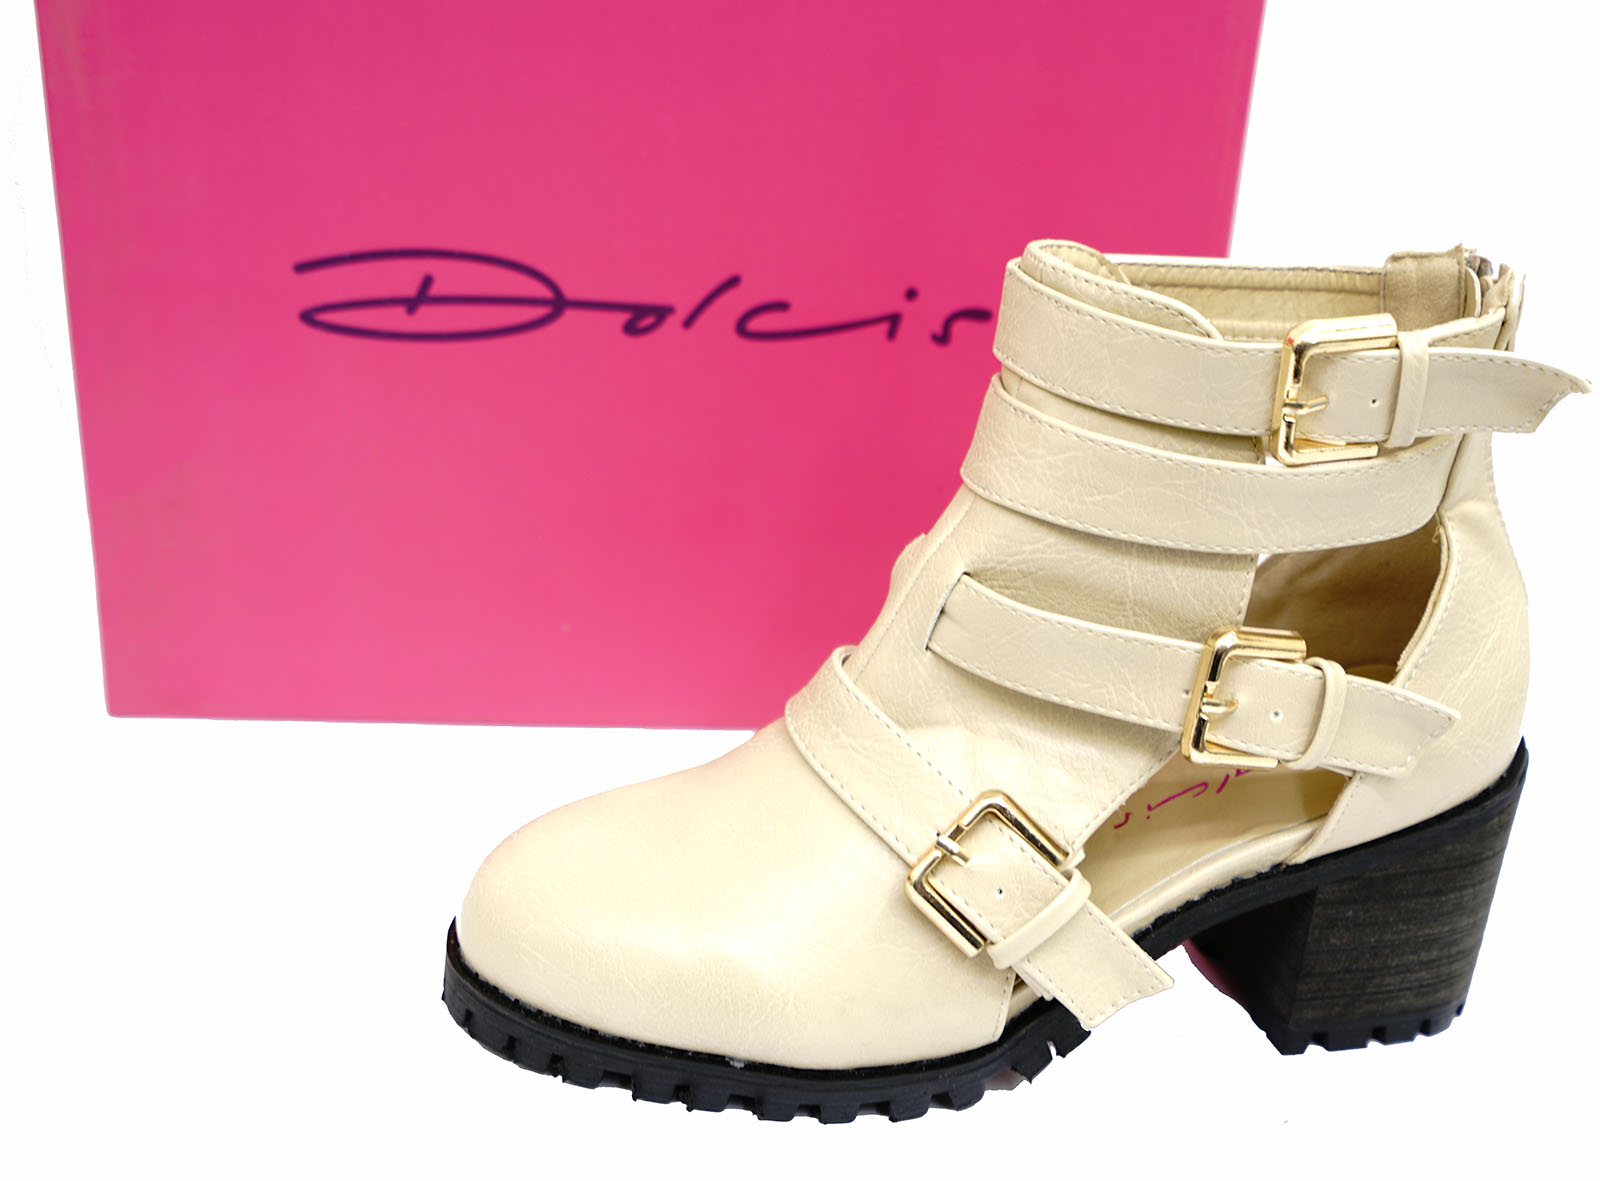 LADIES-DOLCIS-NUDE-CHUNKY-PLATFORM-CLEATED-BUCKLE-ANKLE-BOOTS-SHOES-SIZE-3-8